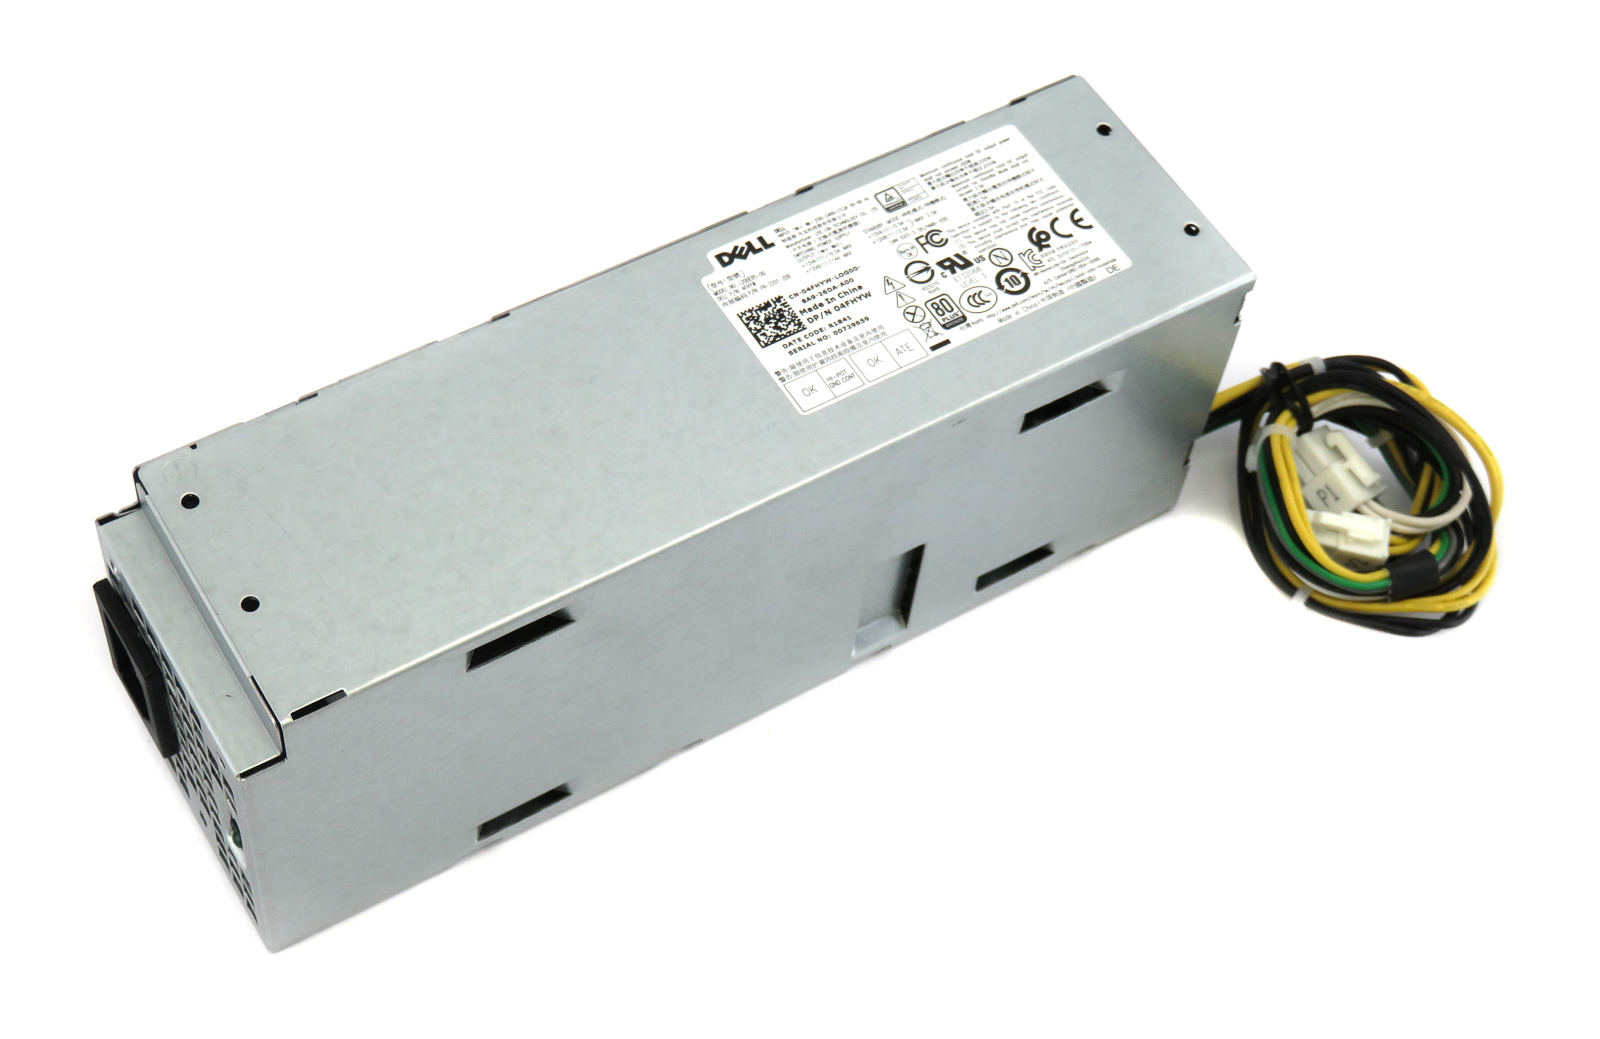 Dell L200EBS-00 200W Power Supply f/ 3060 / 5060 / 7060 / 3470 - 4FHYW